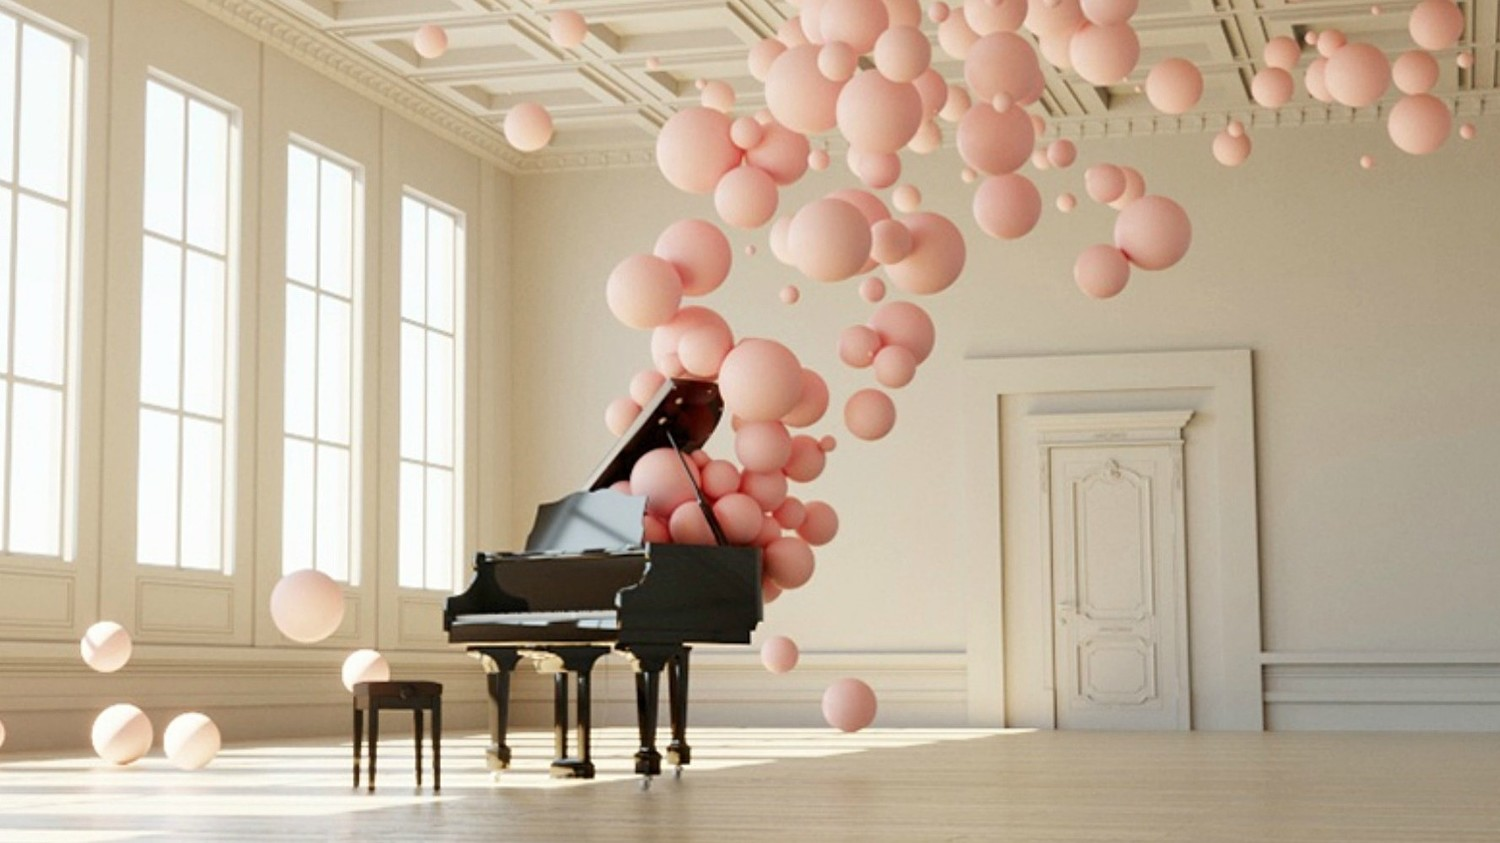 Let These Dreamy Quot Musical Quot Balloons Inspire Your Next